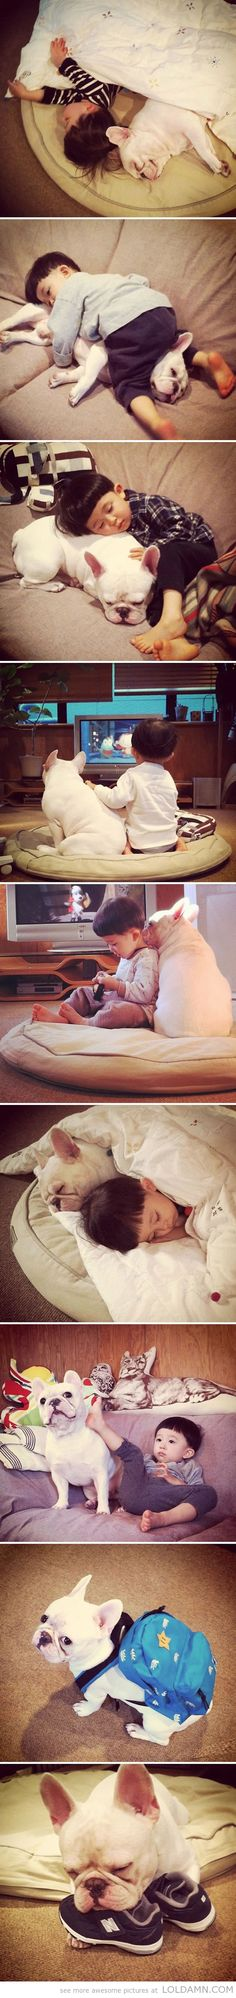 The sweetest friendship a boy will have is with his doggy